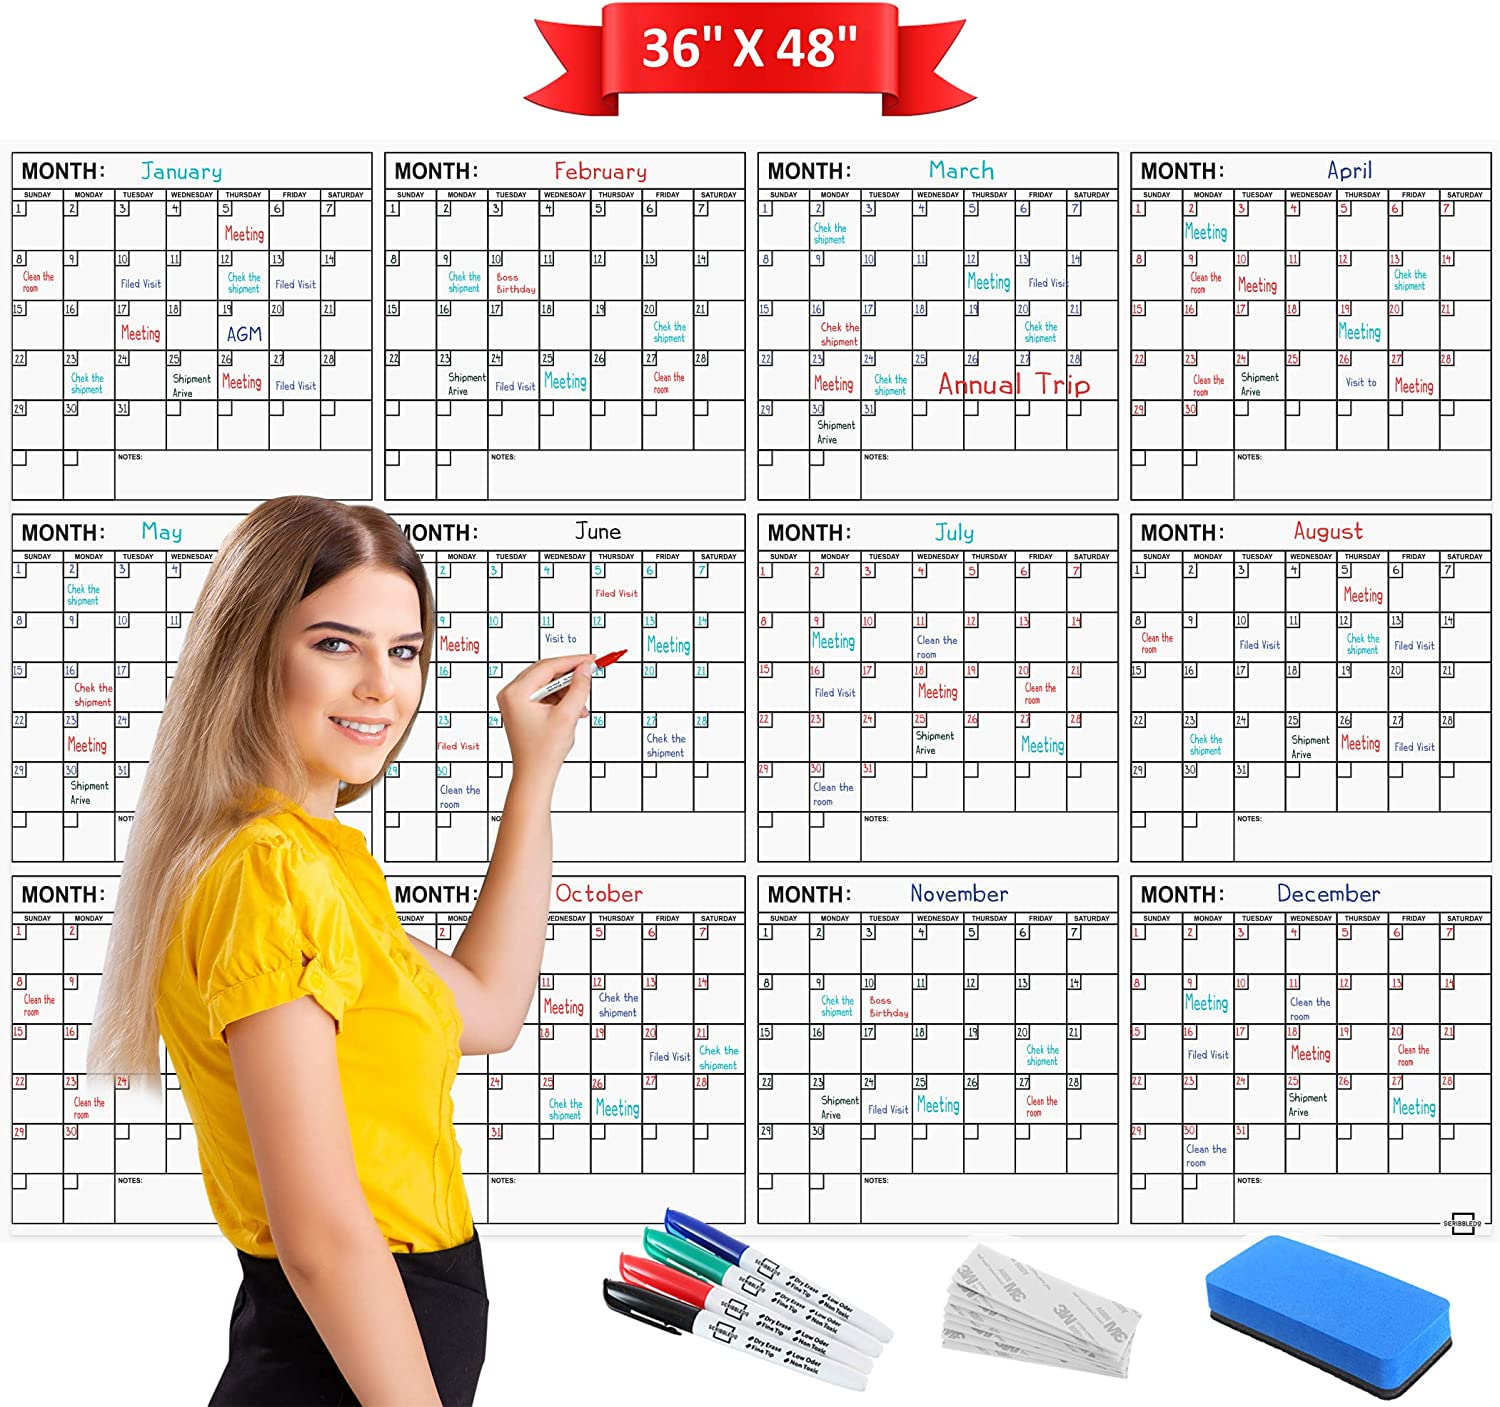 """Jumbo Dry Erase Yearly Calendar 36"""" x 48"""" 12 Month Reusable Wall Planner Includes 4 Markers 1 Eraser and Mounting Tape.… (Horizontal)"""